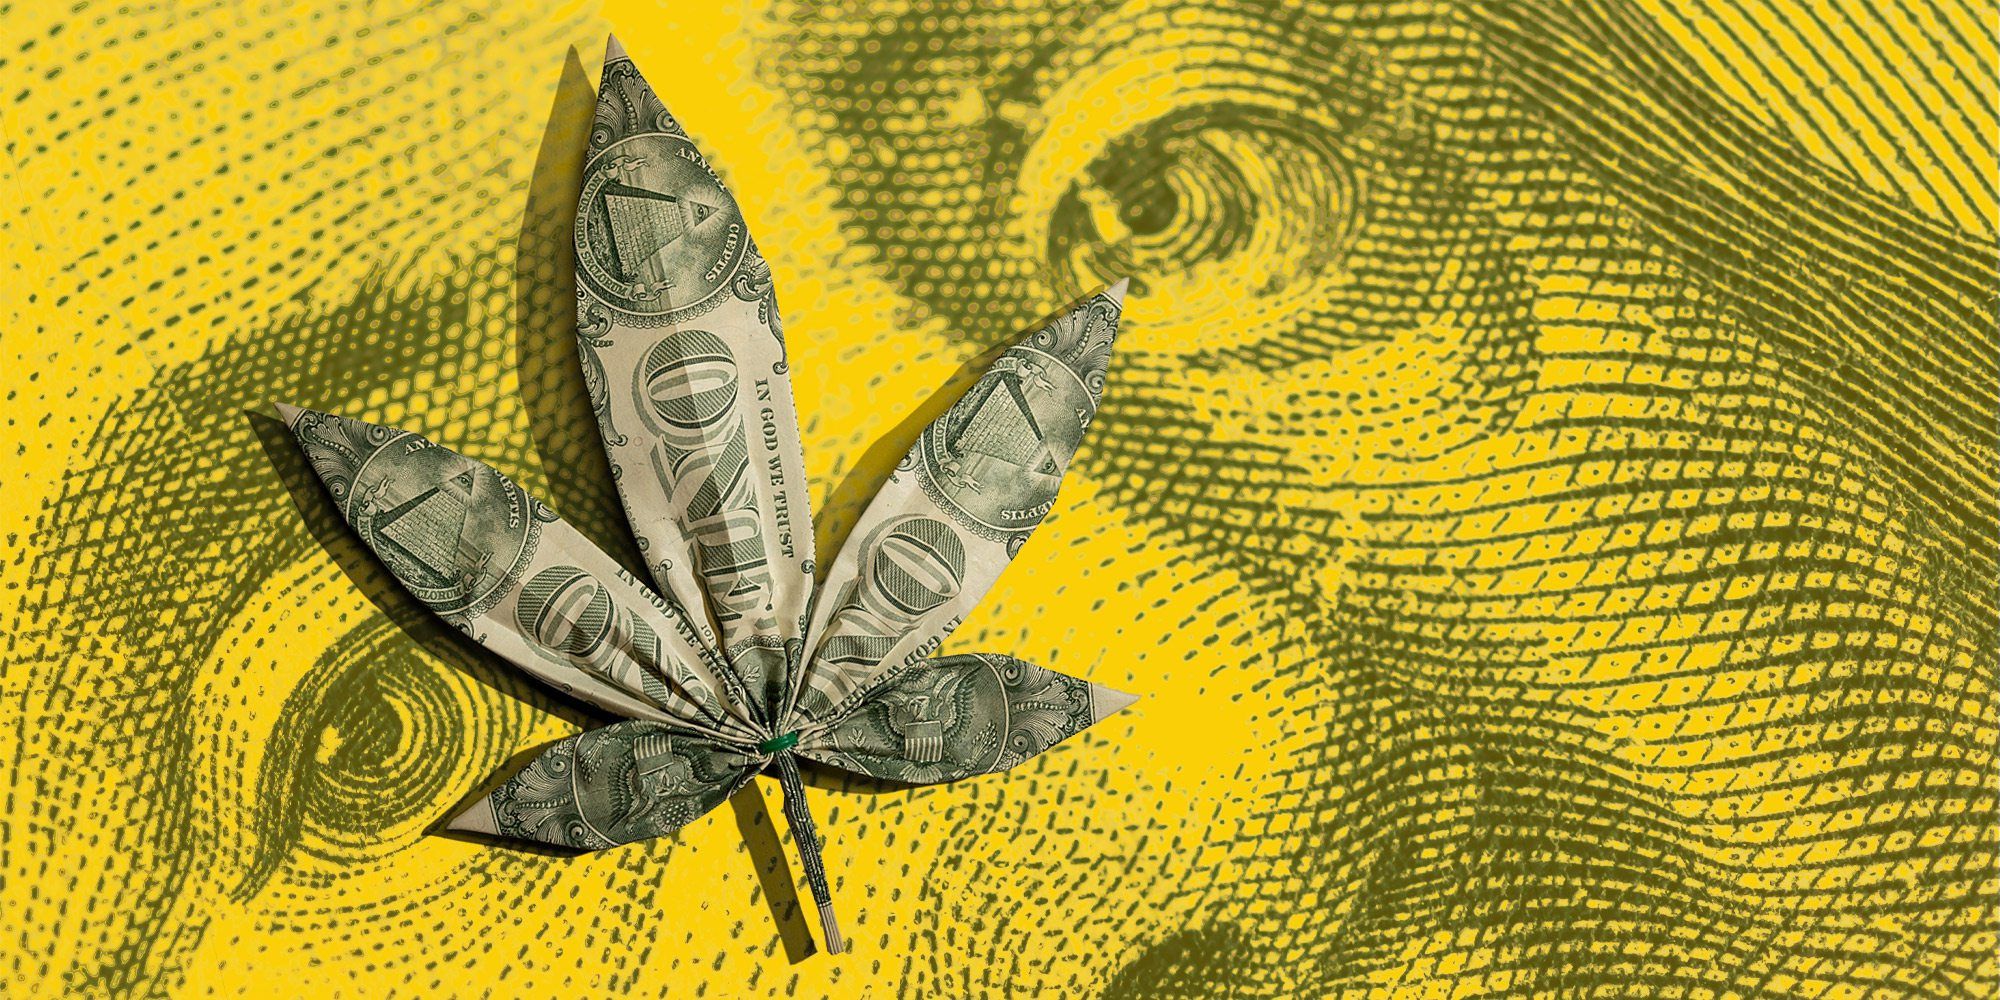 Pot leaf made of dollar bills